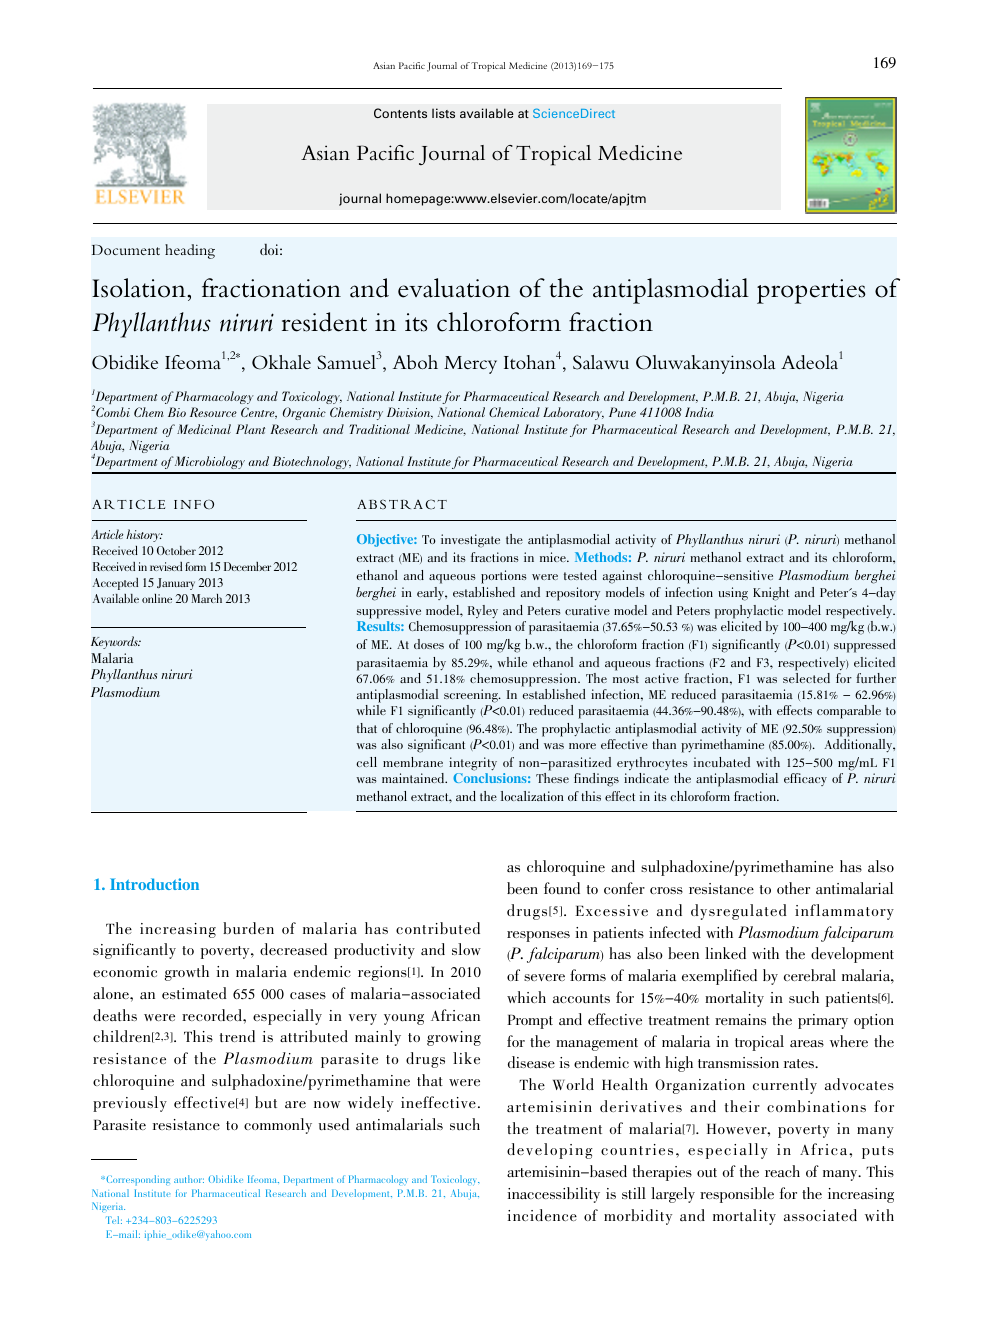 Isolation, fractionation and evaluation of the antiplasmodial